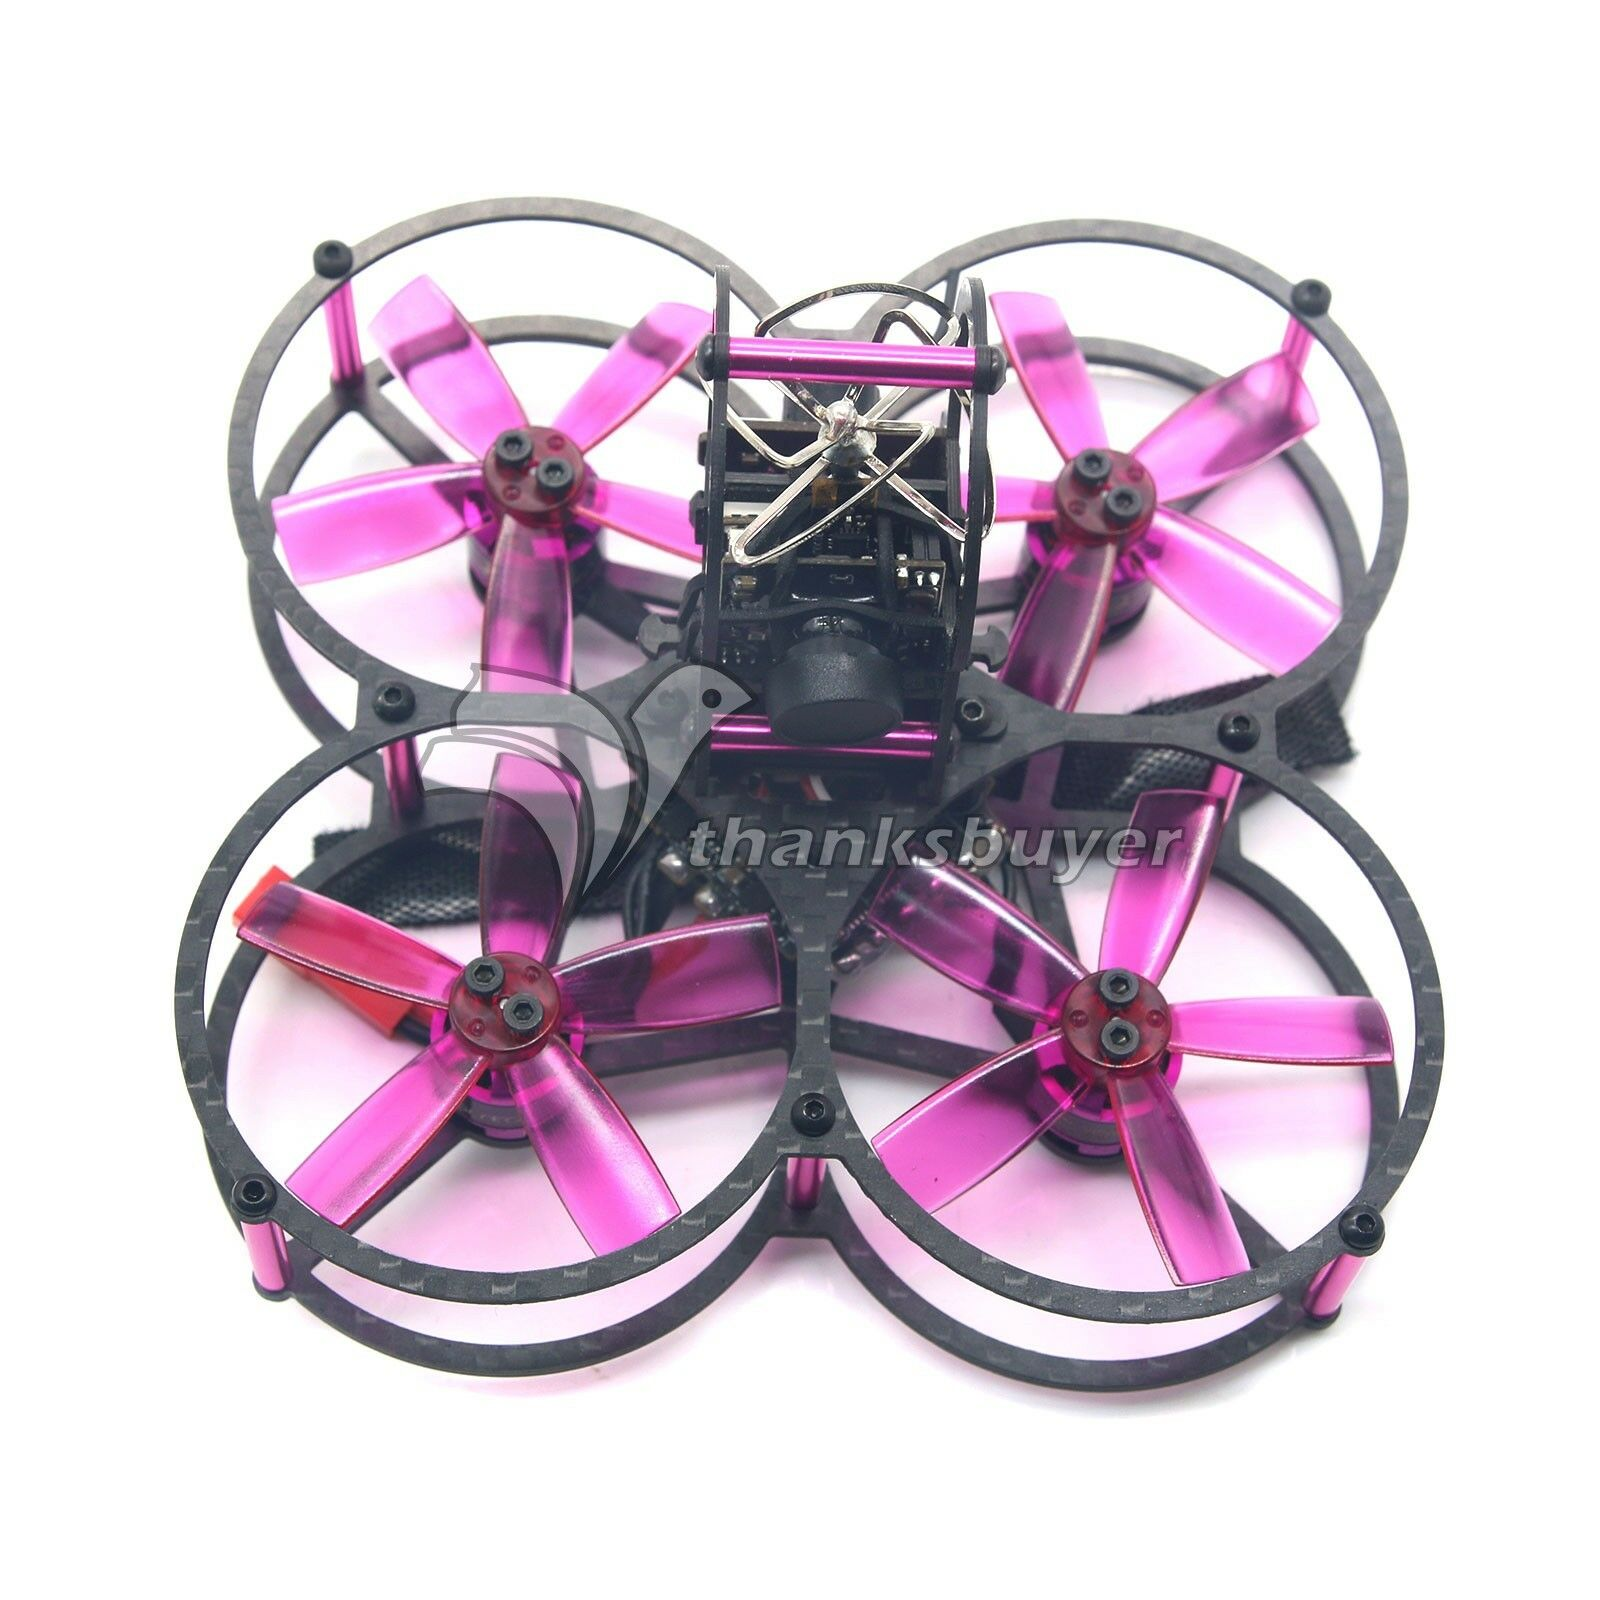 HGLRC XJB75 FPV Racing Drone 4 Axis Quadcopter with Camera Flight Control Combo